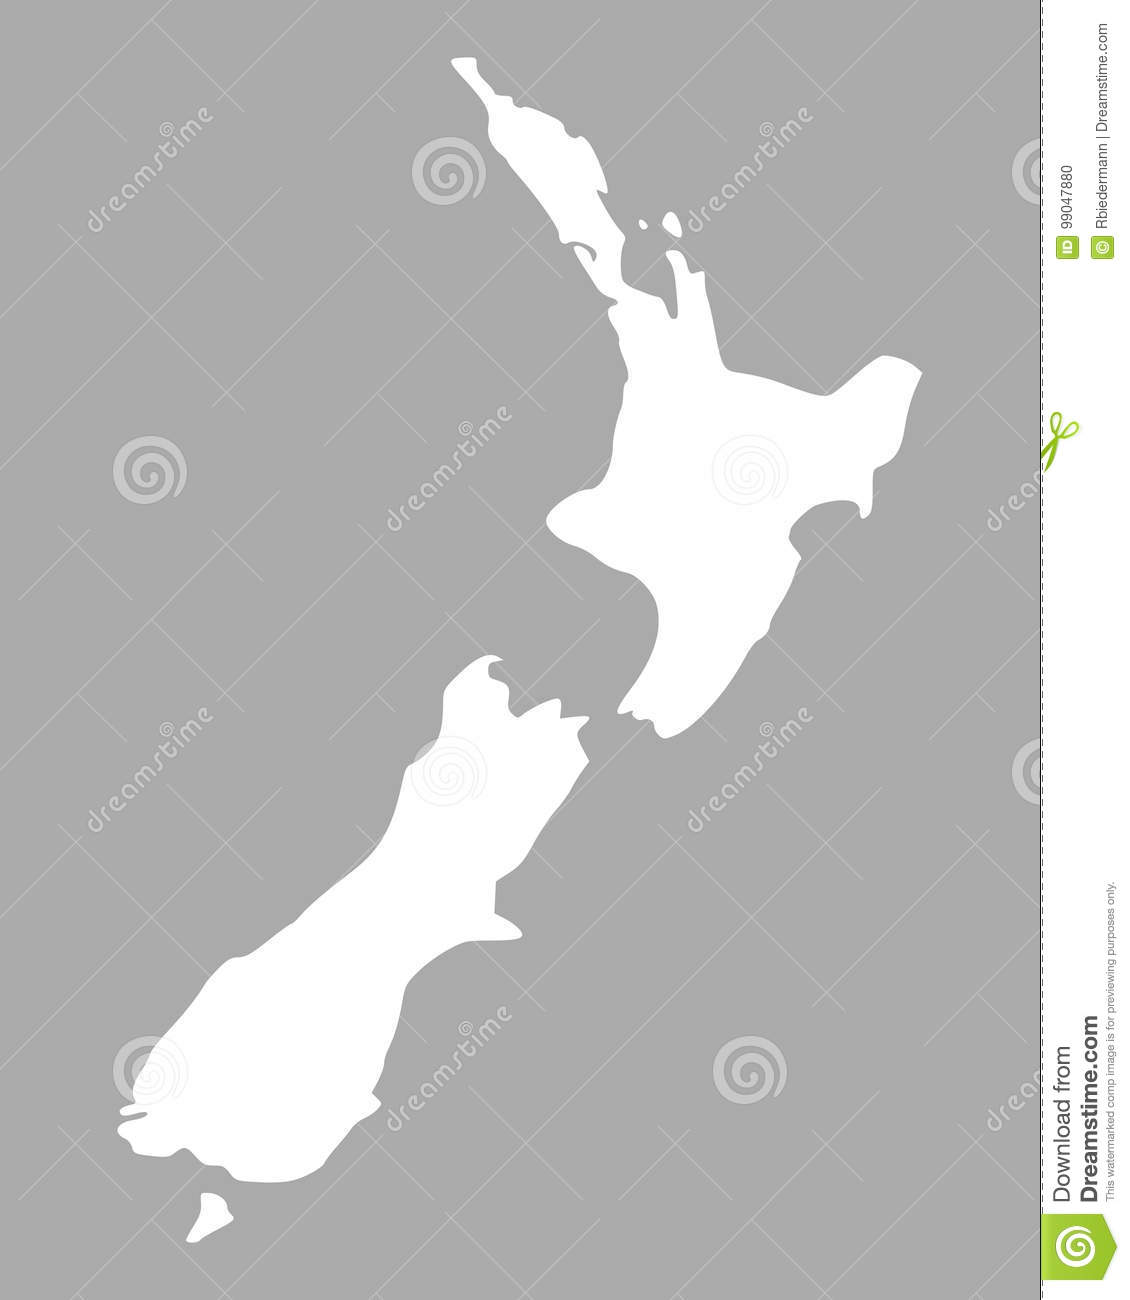 Detailed Map Of New Zealand.Map Of New Zealand Stock Vector Illustration Of Cartography 99047880